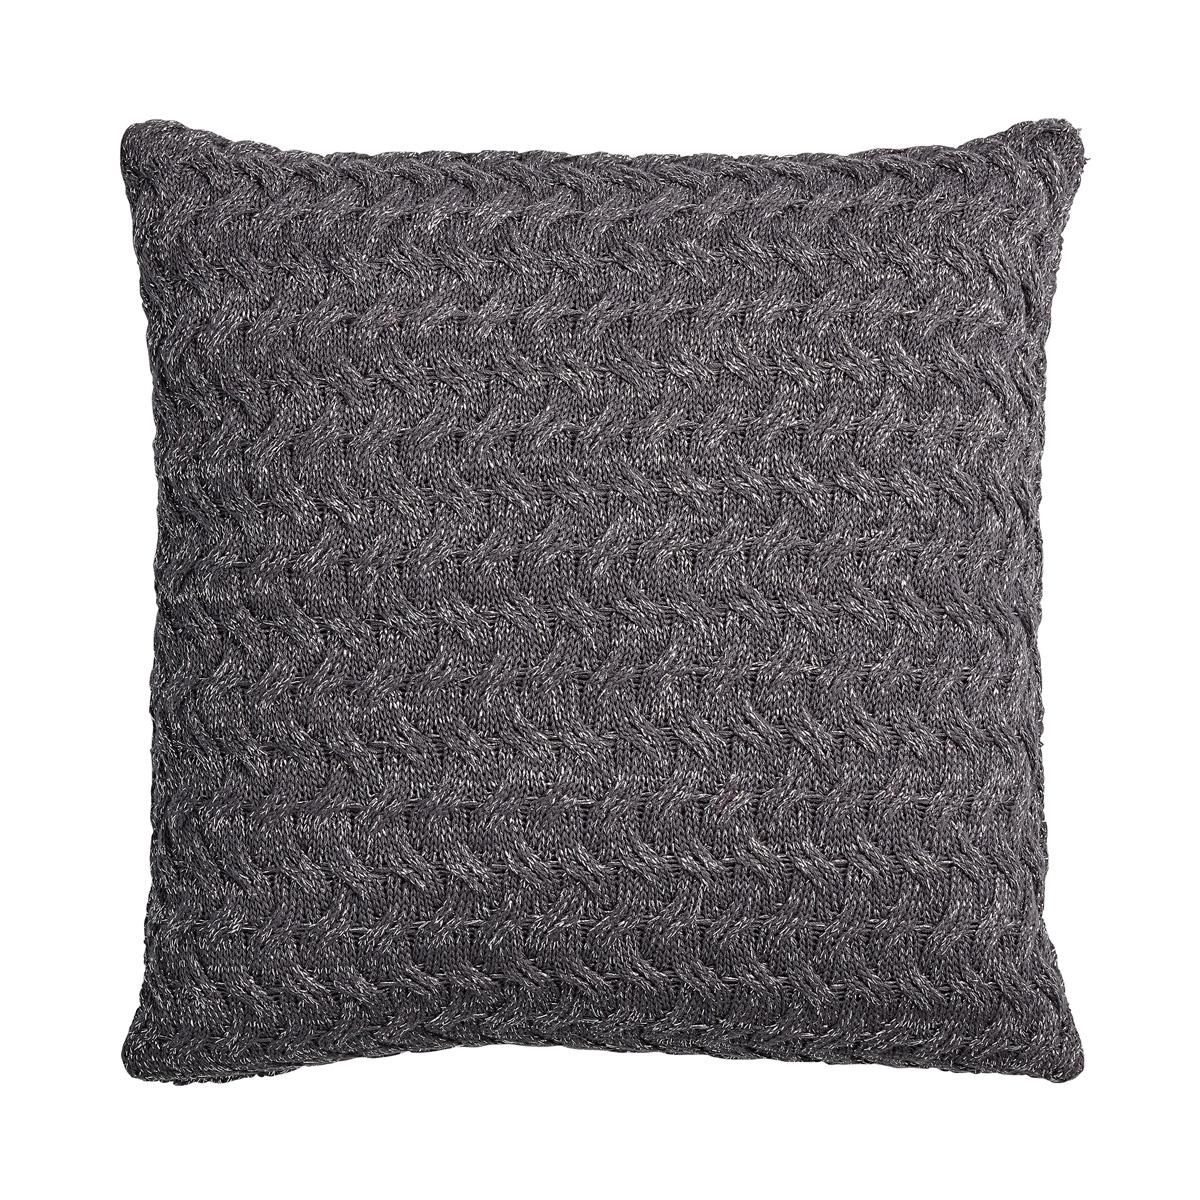 lene bjerre sira-cushion-50x50-cm-a00003026-back